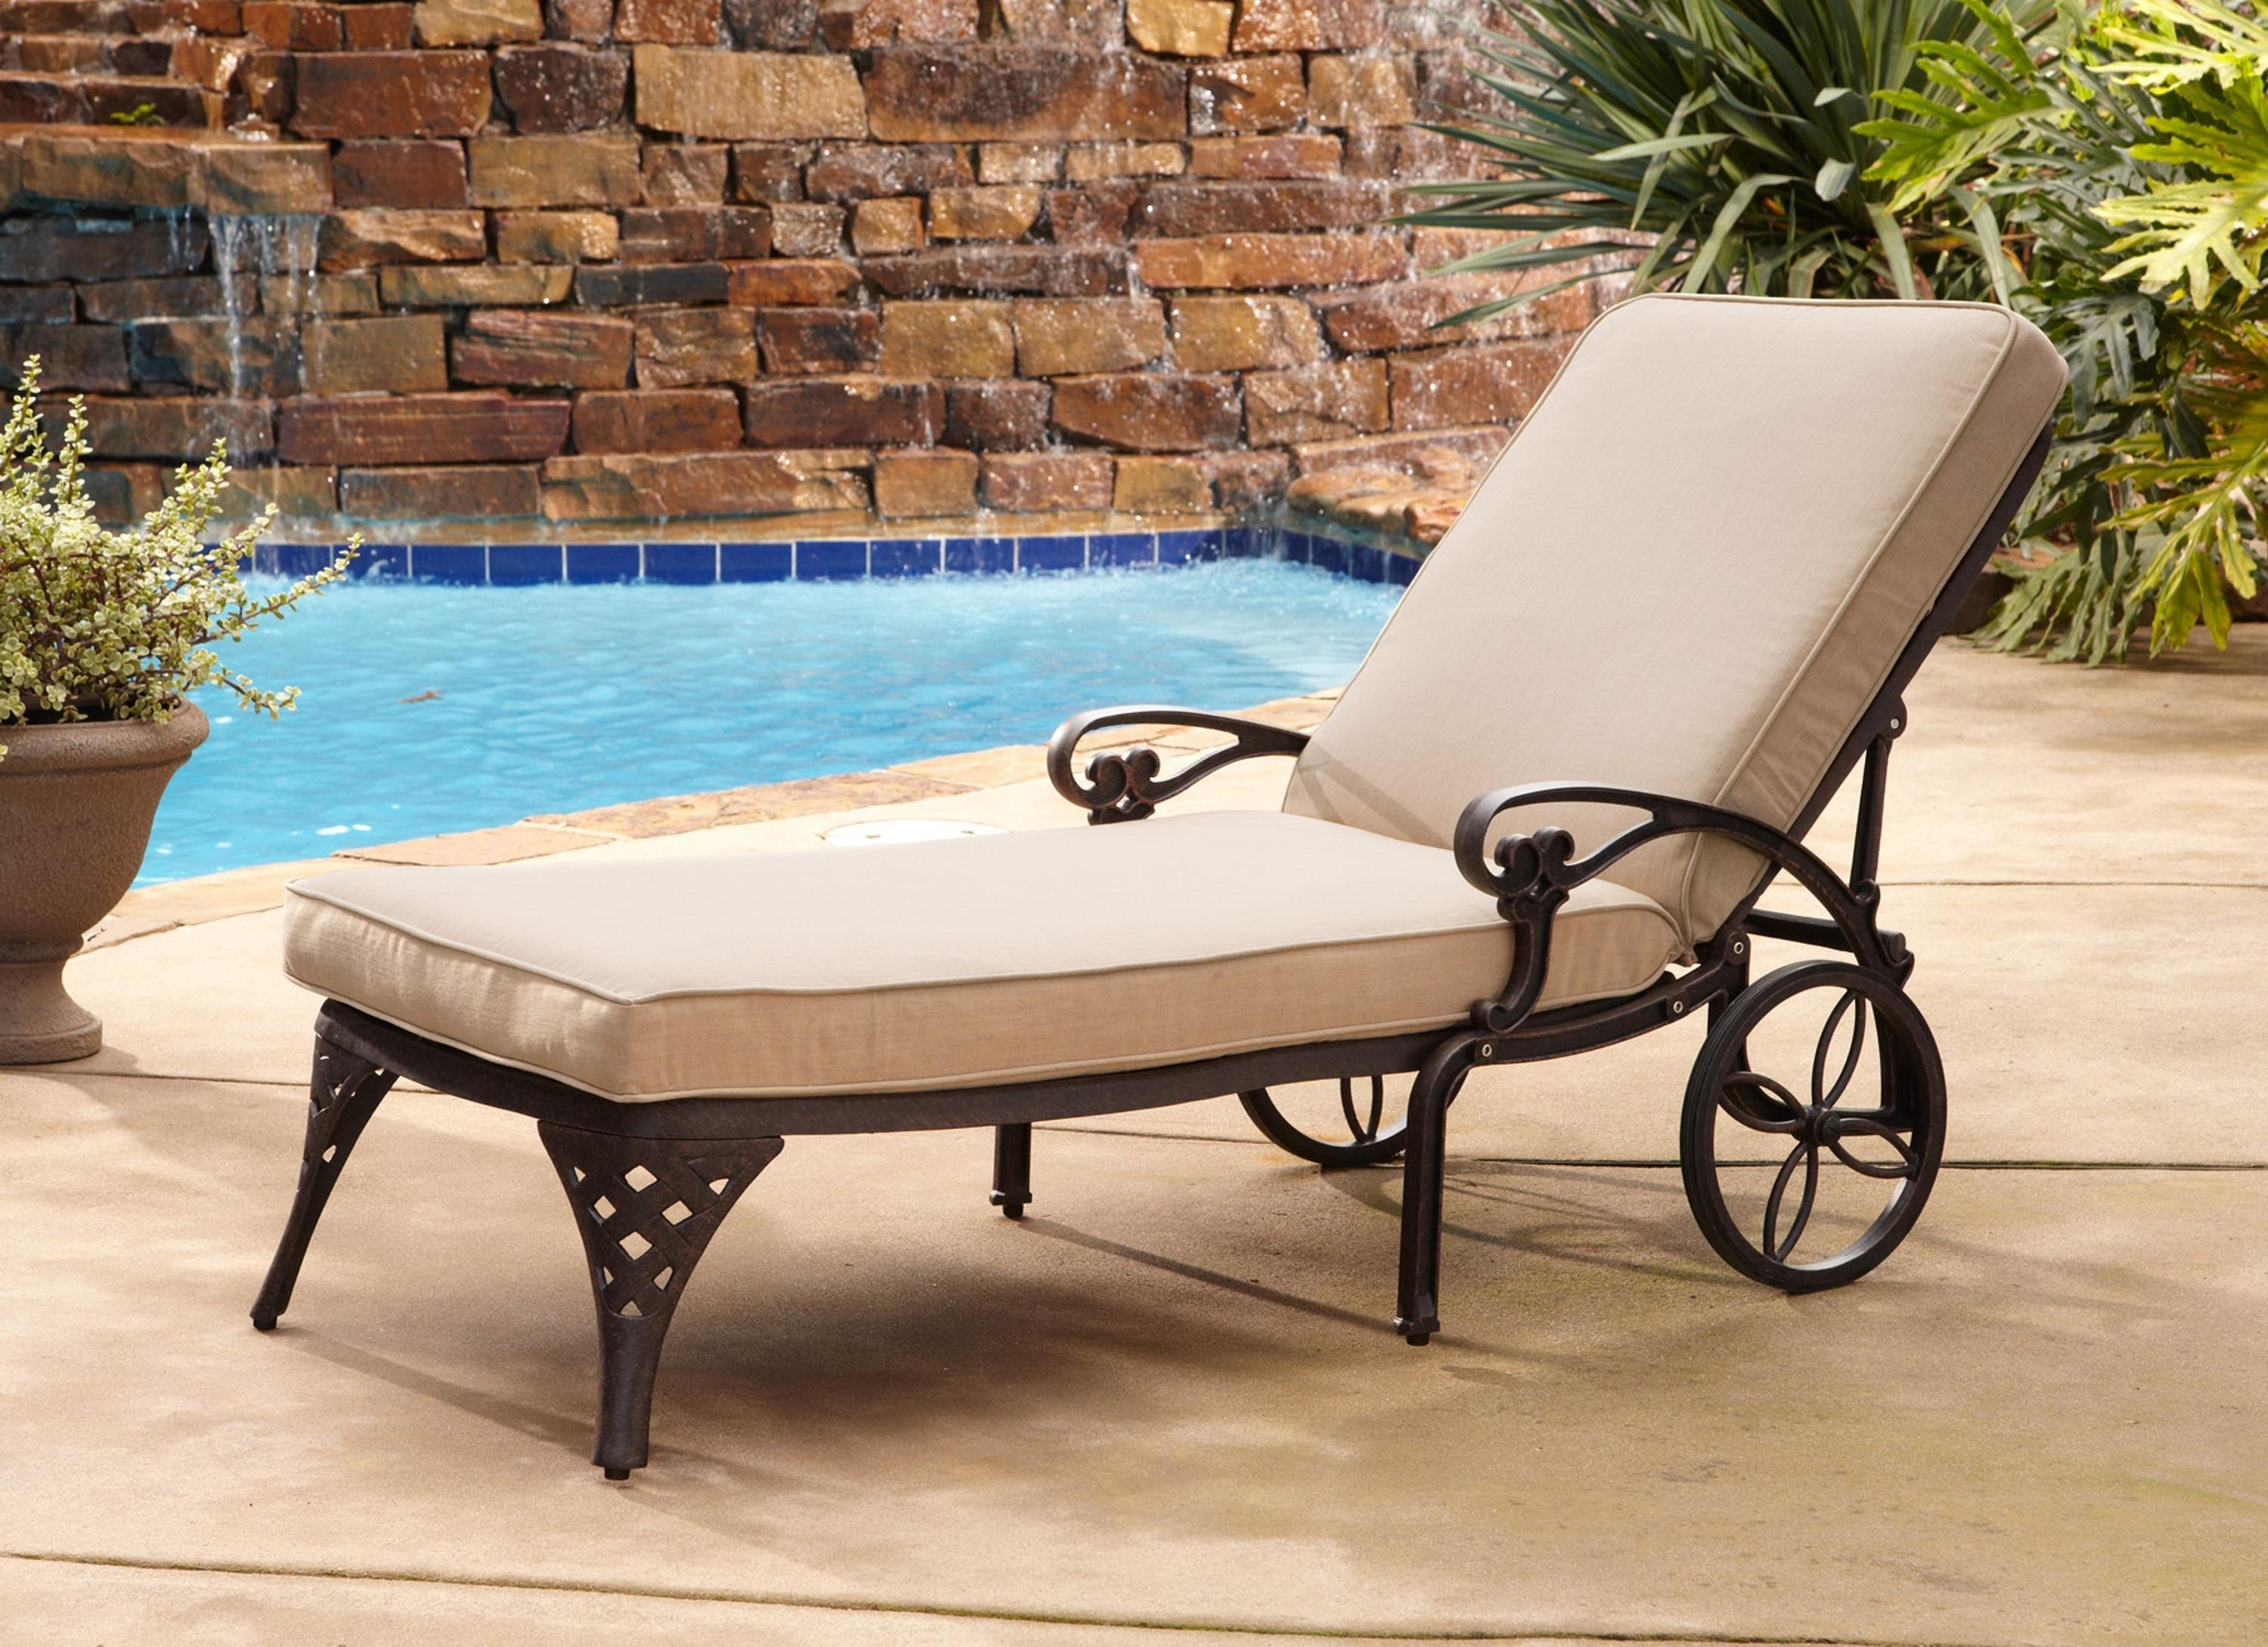 Recent Convertible Chair : Lounge Patio Lounge Chairs With Wheels Metal In Outdoor Pool Furniture Chaise Lounges (View 9 of 15)